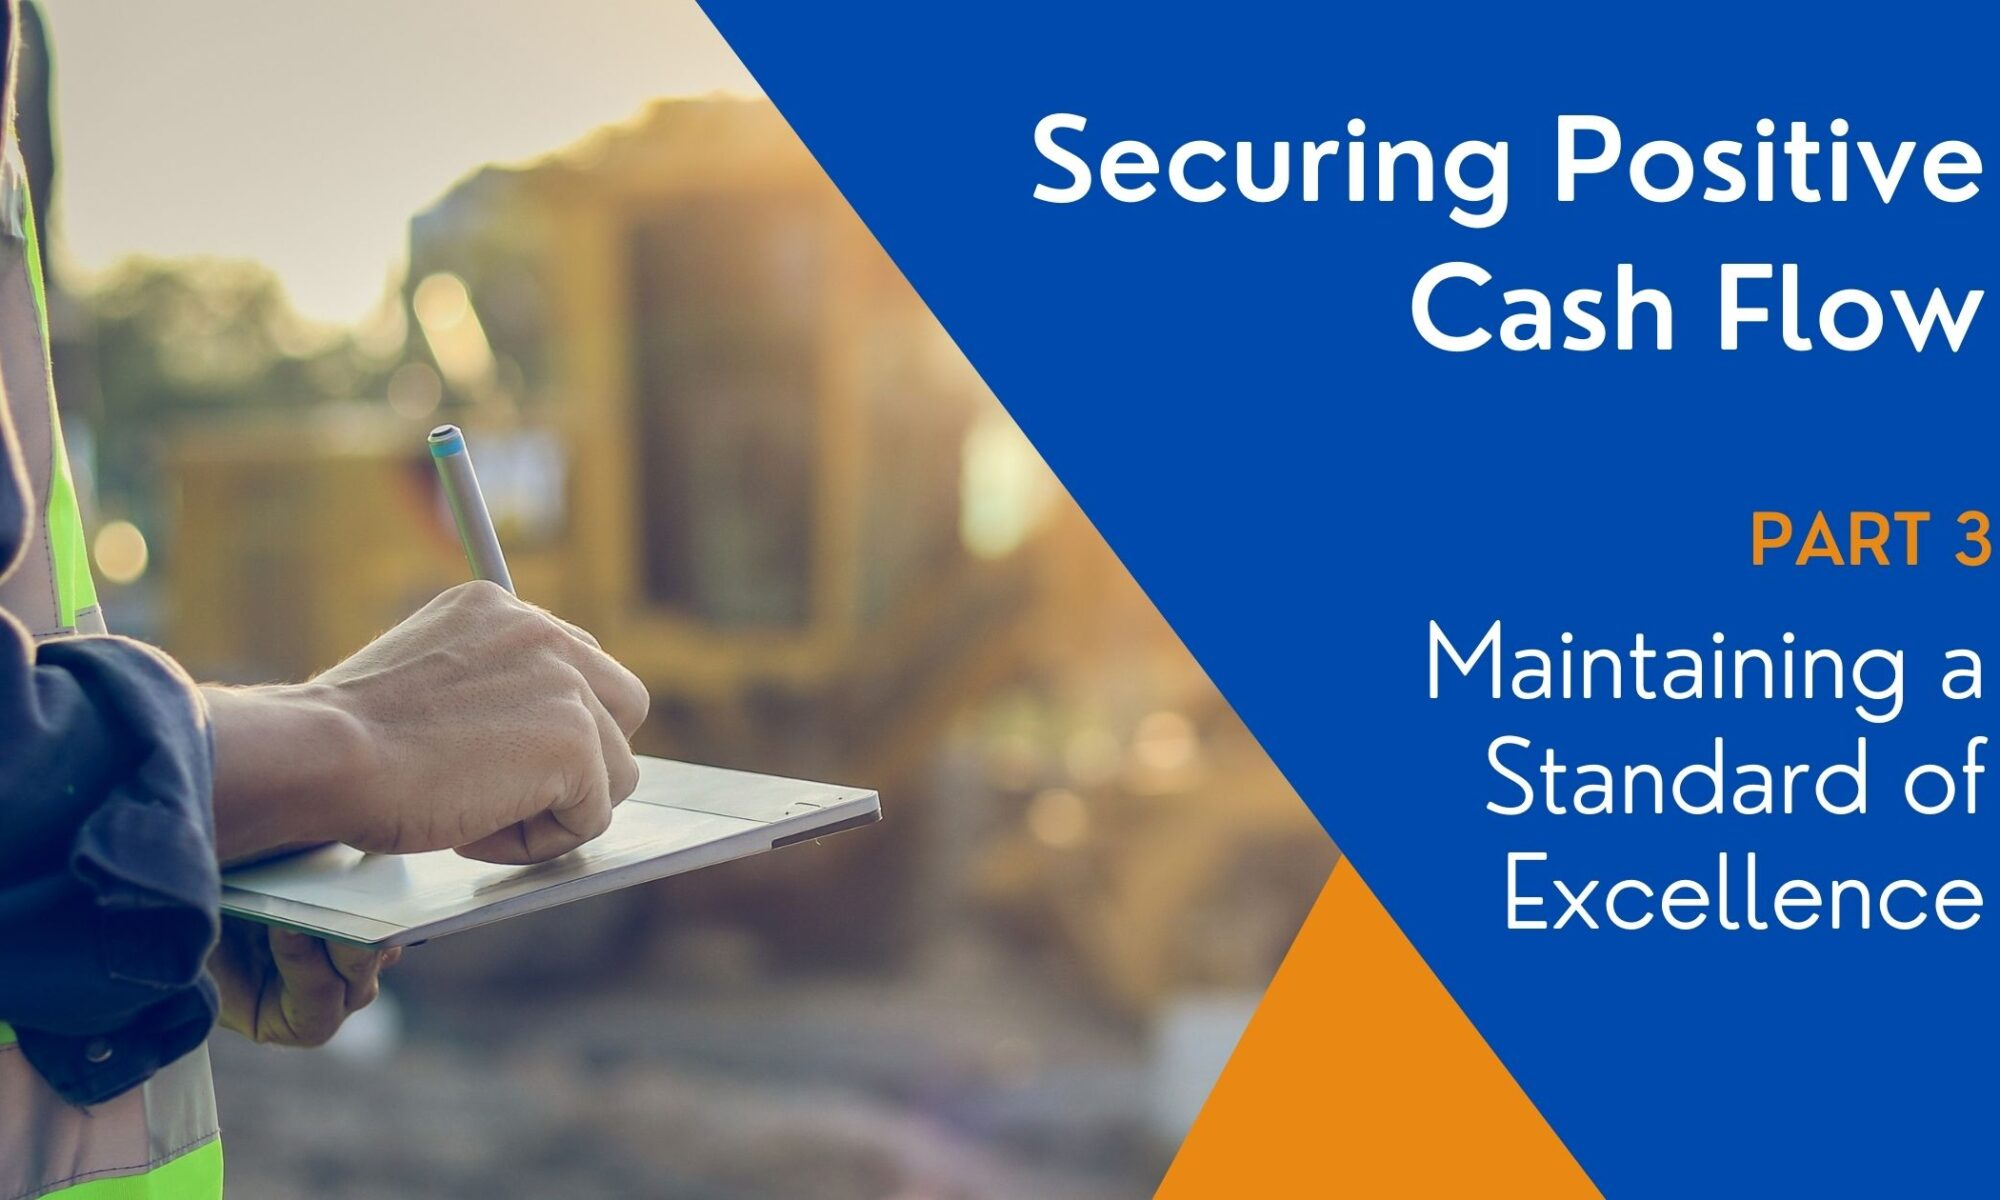 Securing Positive Cash Flow Part 3 Maintaining a Standard of Excellence